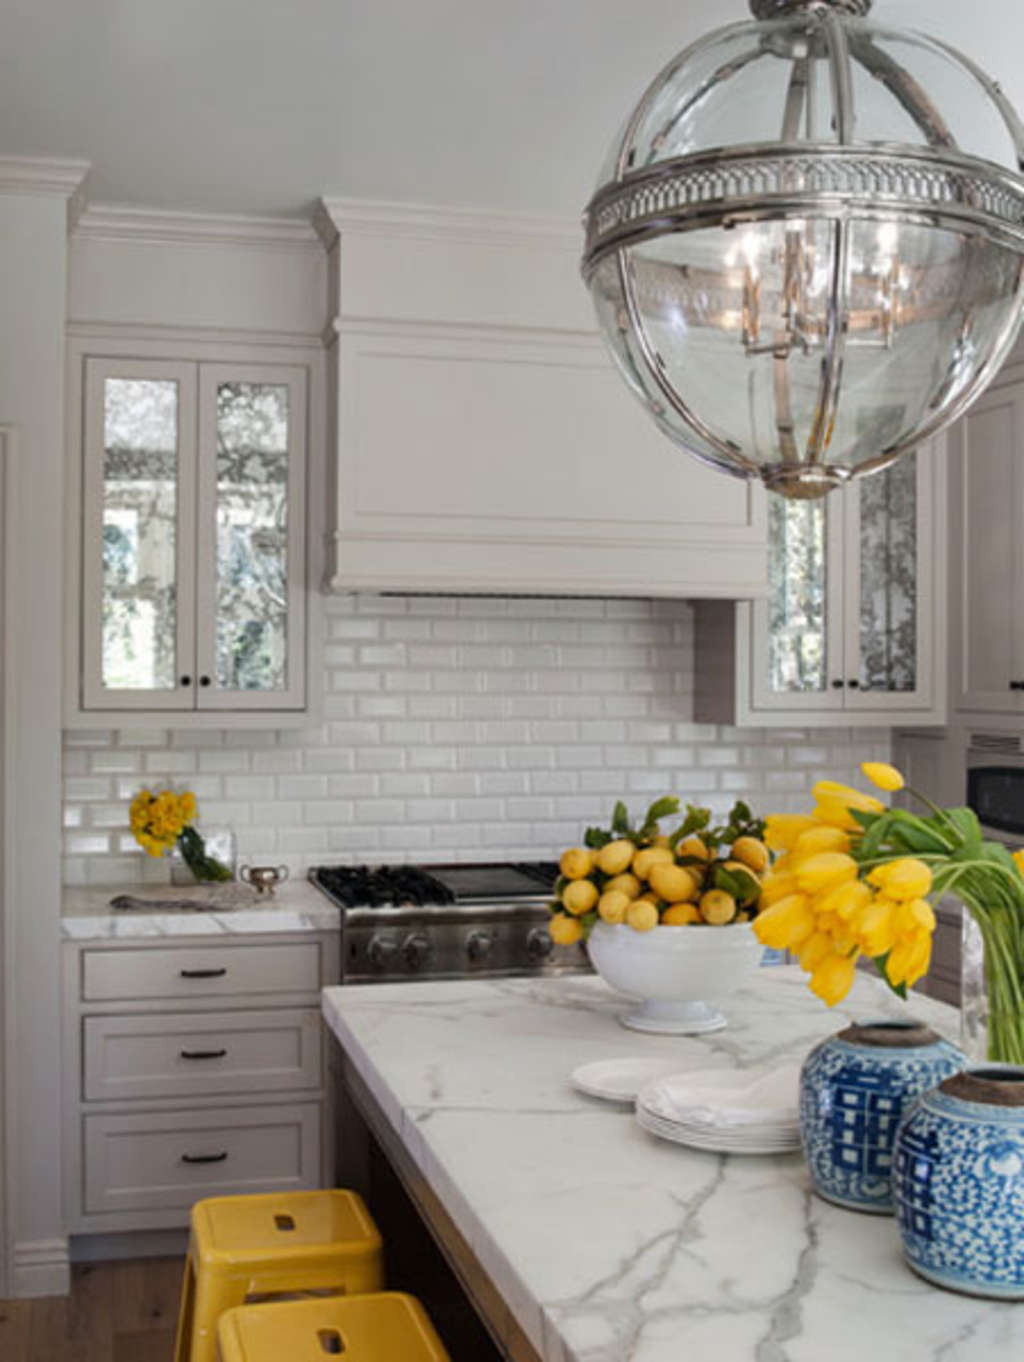 Mind The Gap: Fresh Ideas For Decorating The Kitchen